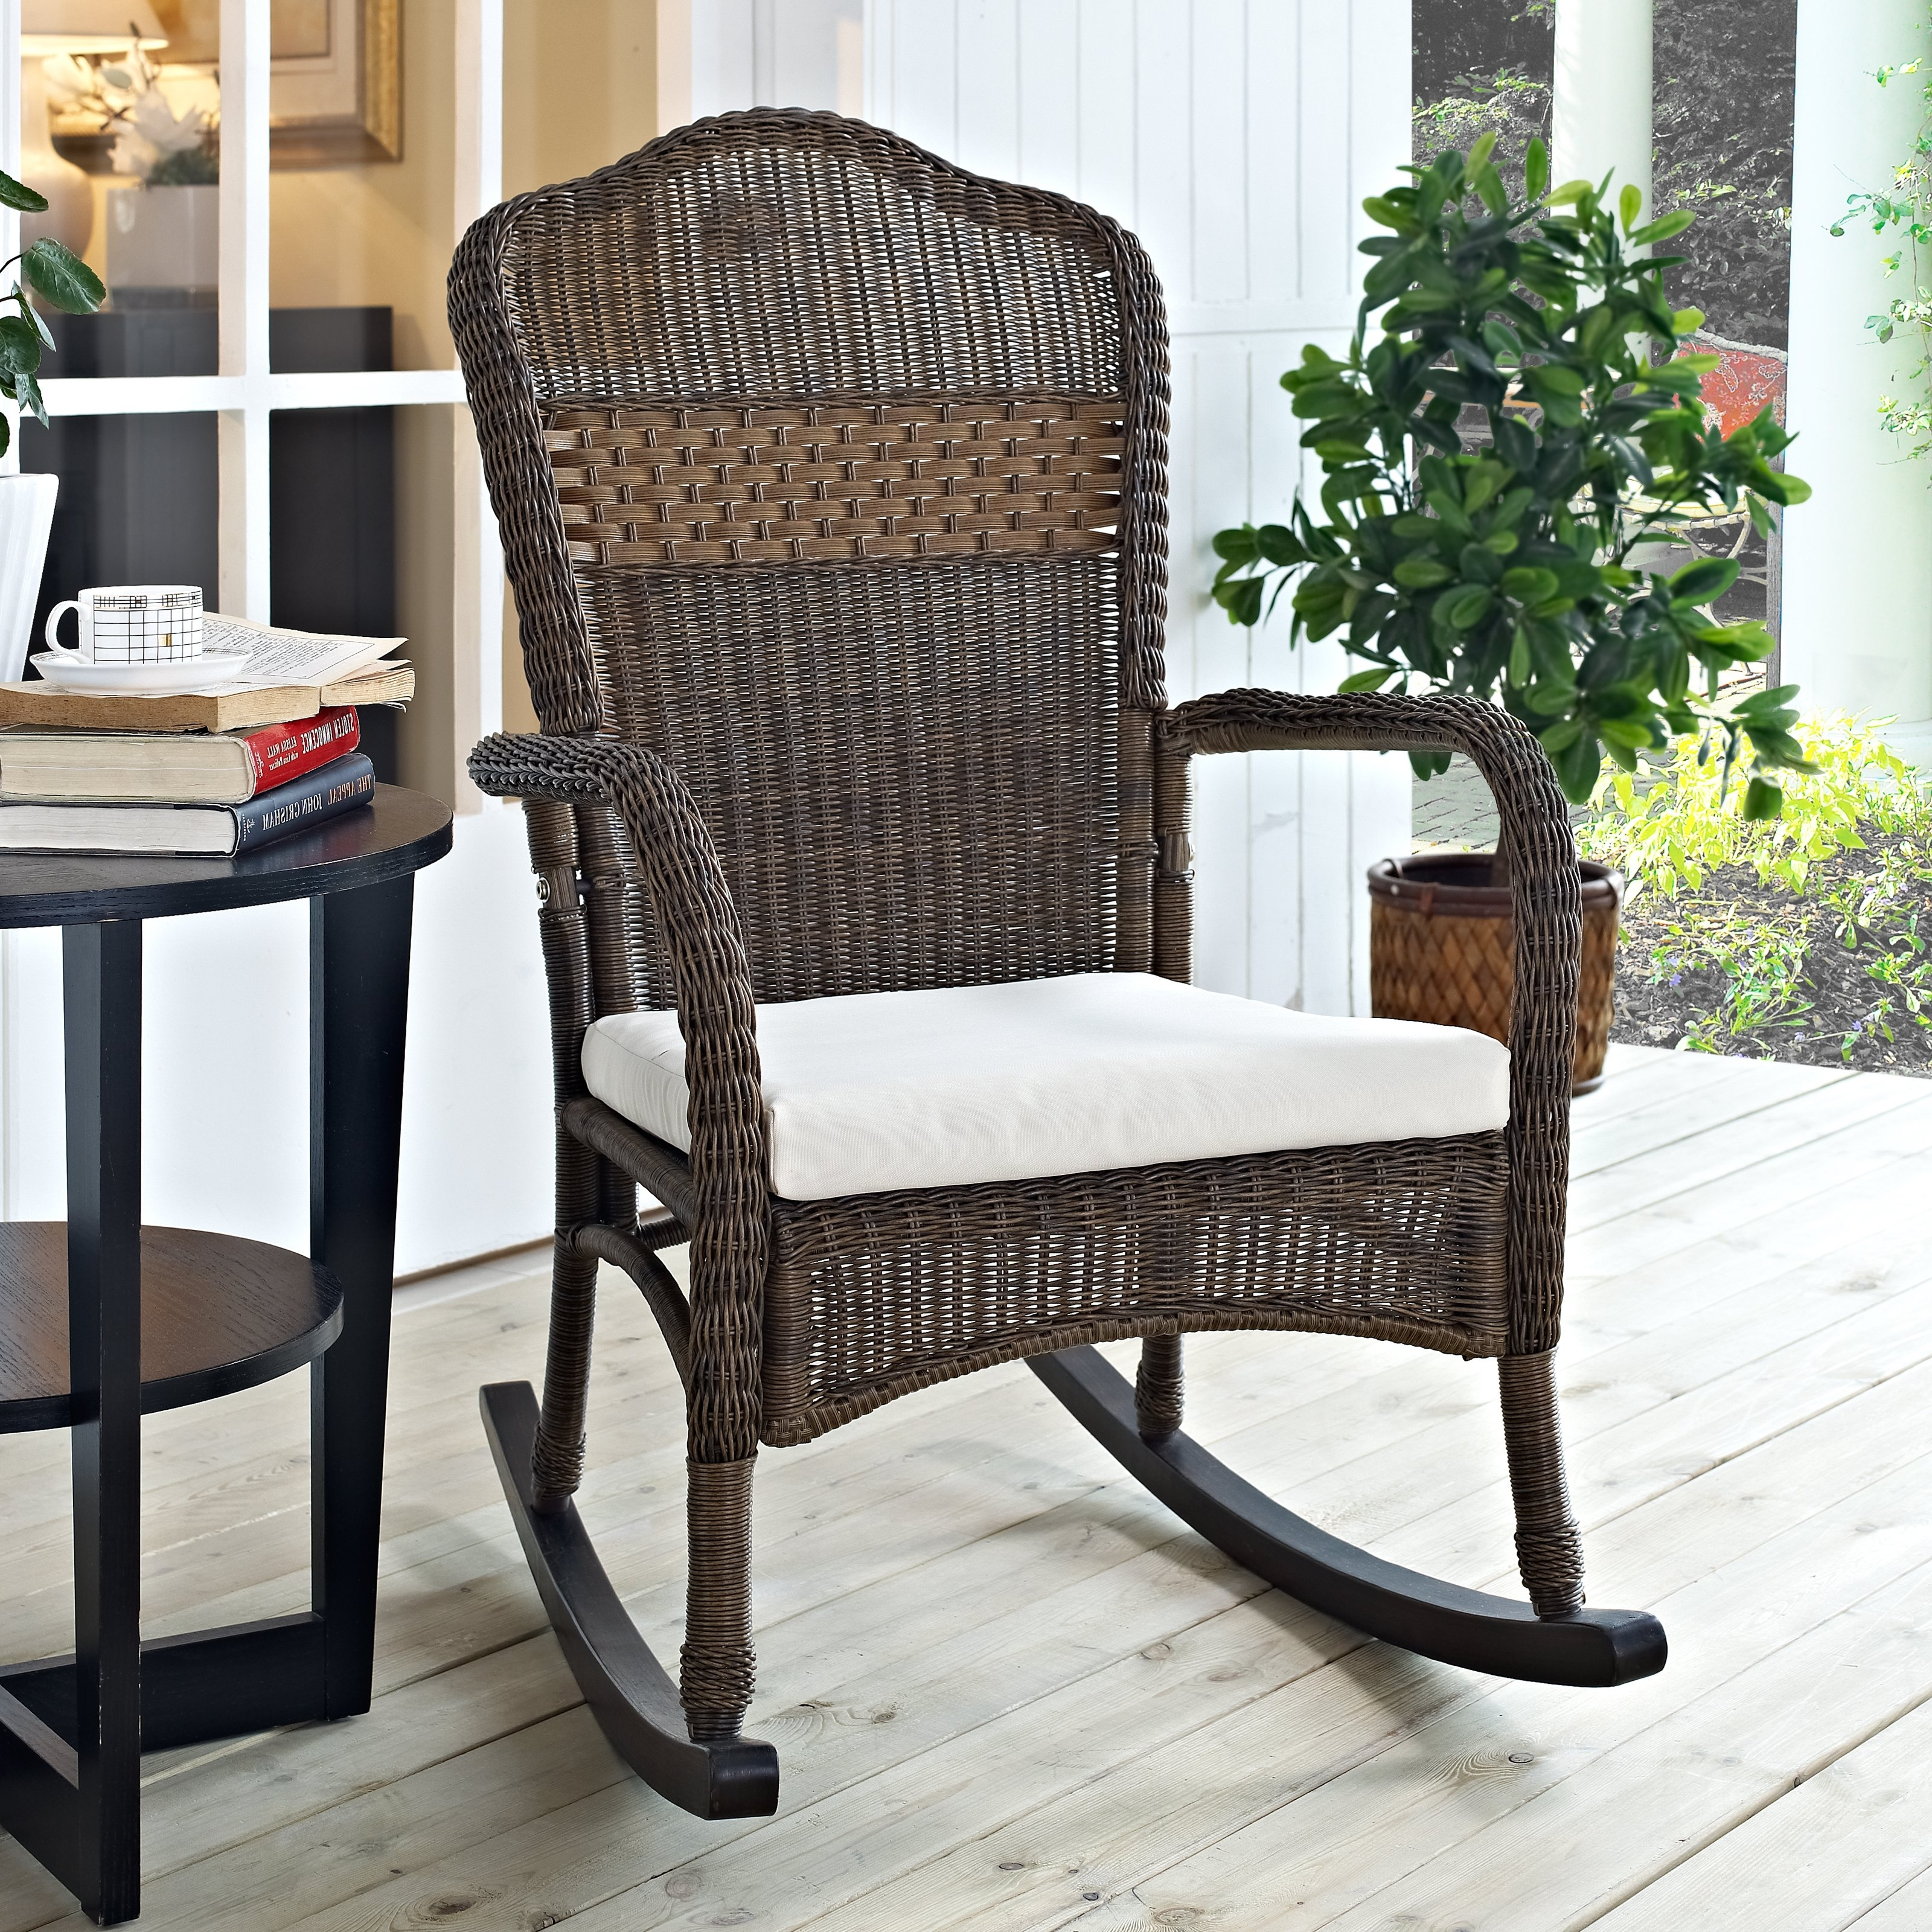 Outdoor Wicker Rocking Chair Cushions – Outdoor Designs In Best And Newest Rocking Chair Cushions For Outdoor (View 12 of 20)